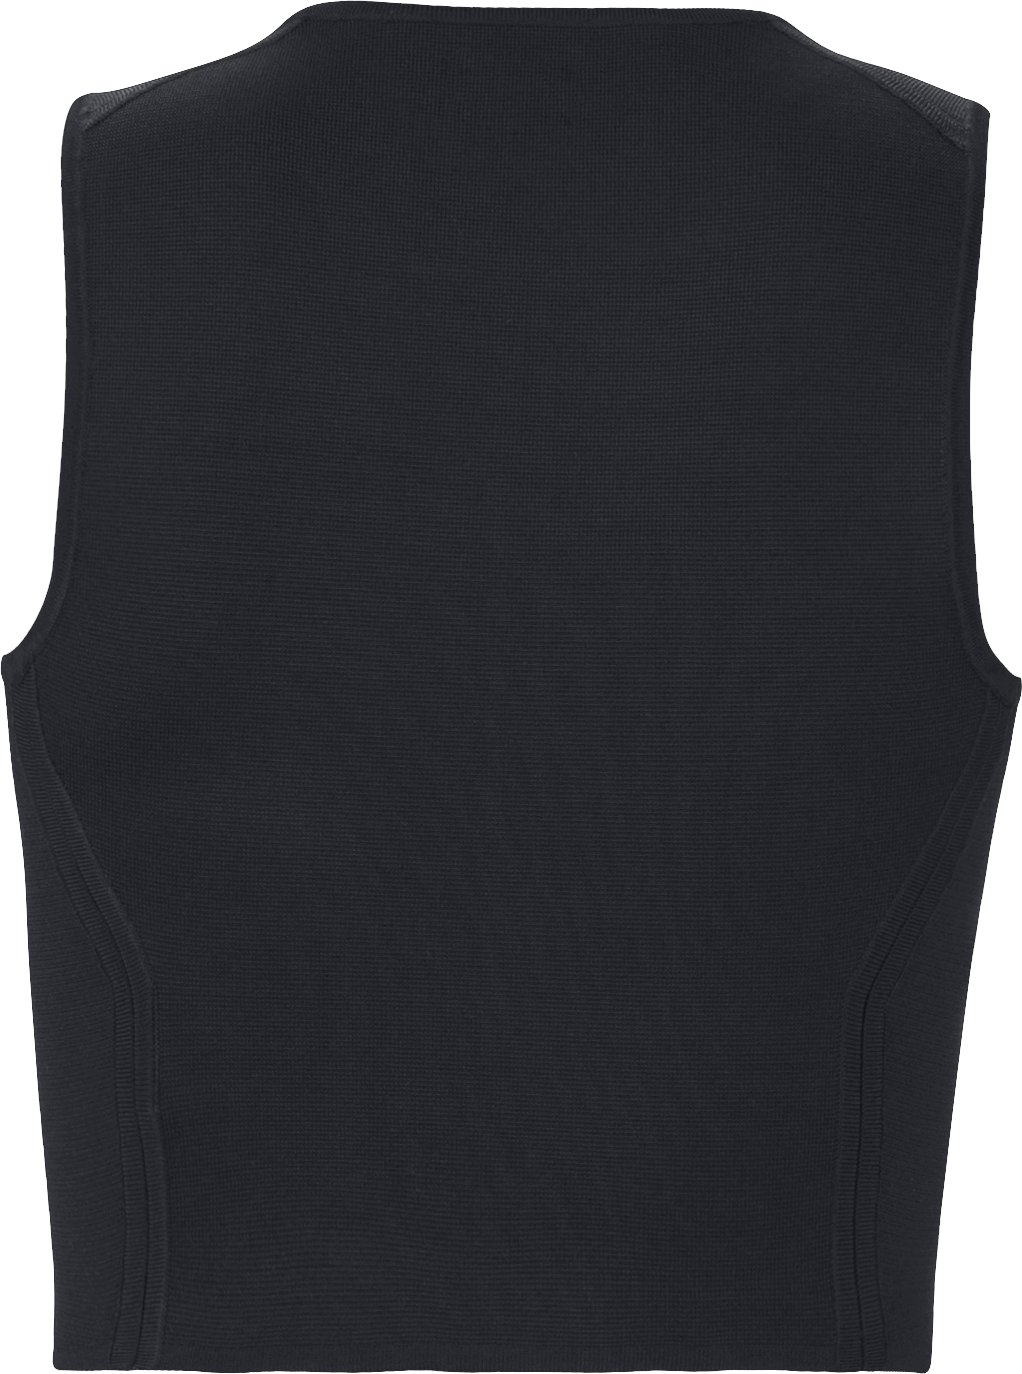 Women's UAS Racer Cropped Tank, Black , undefined